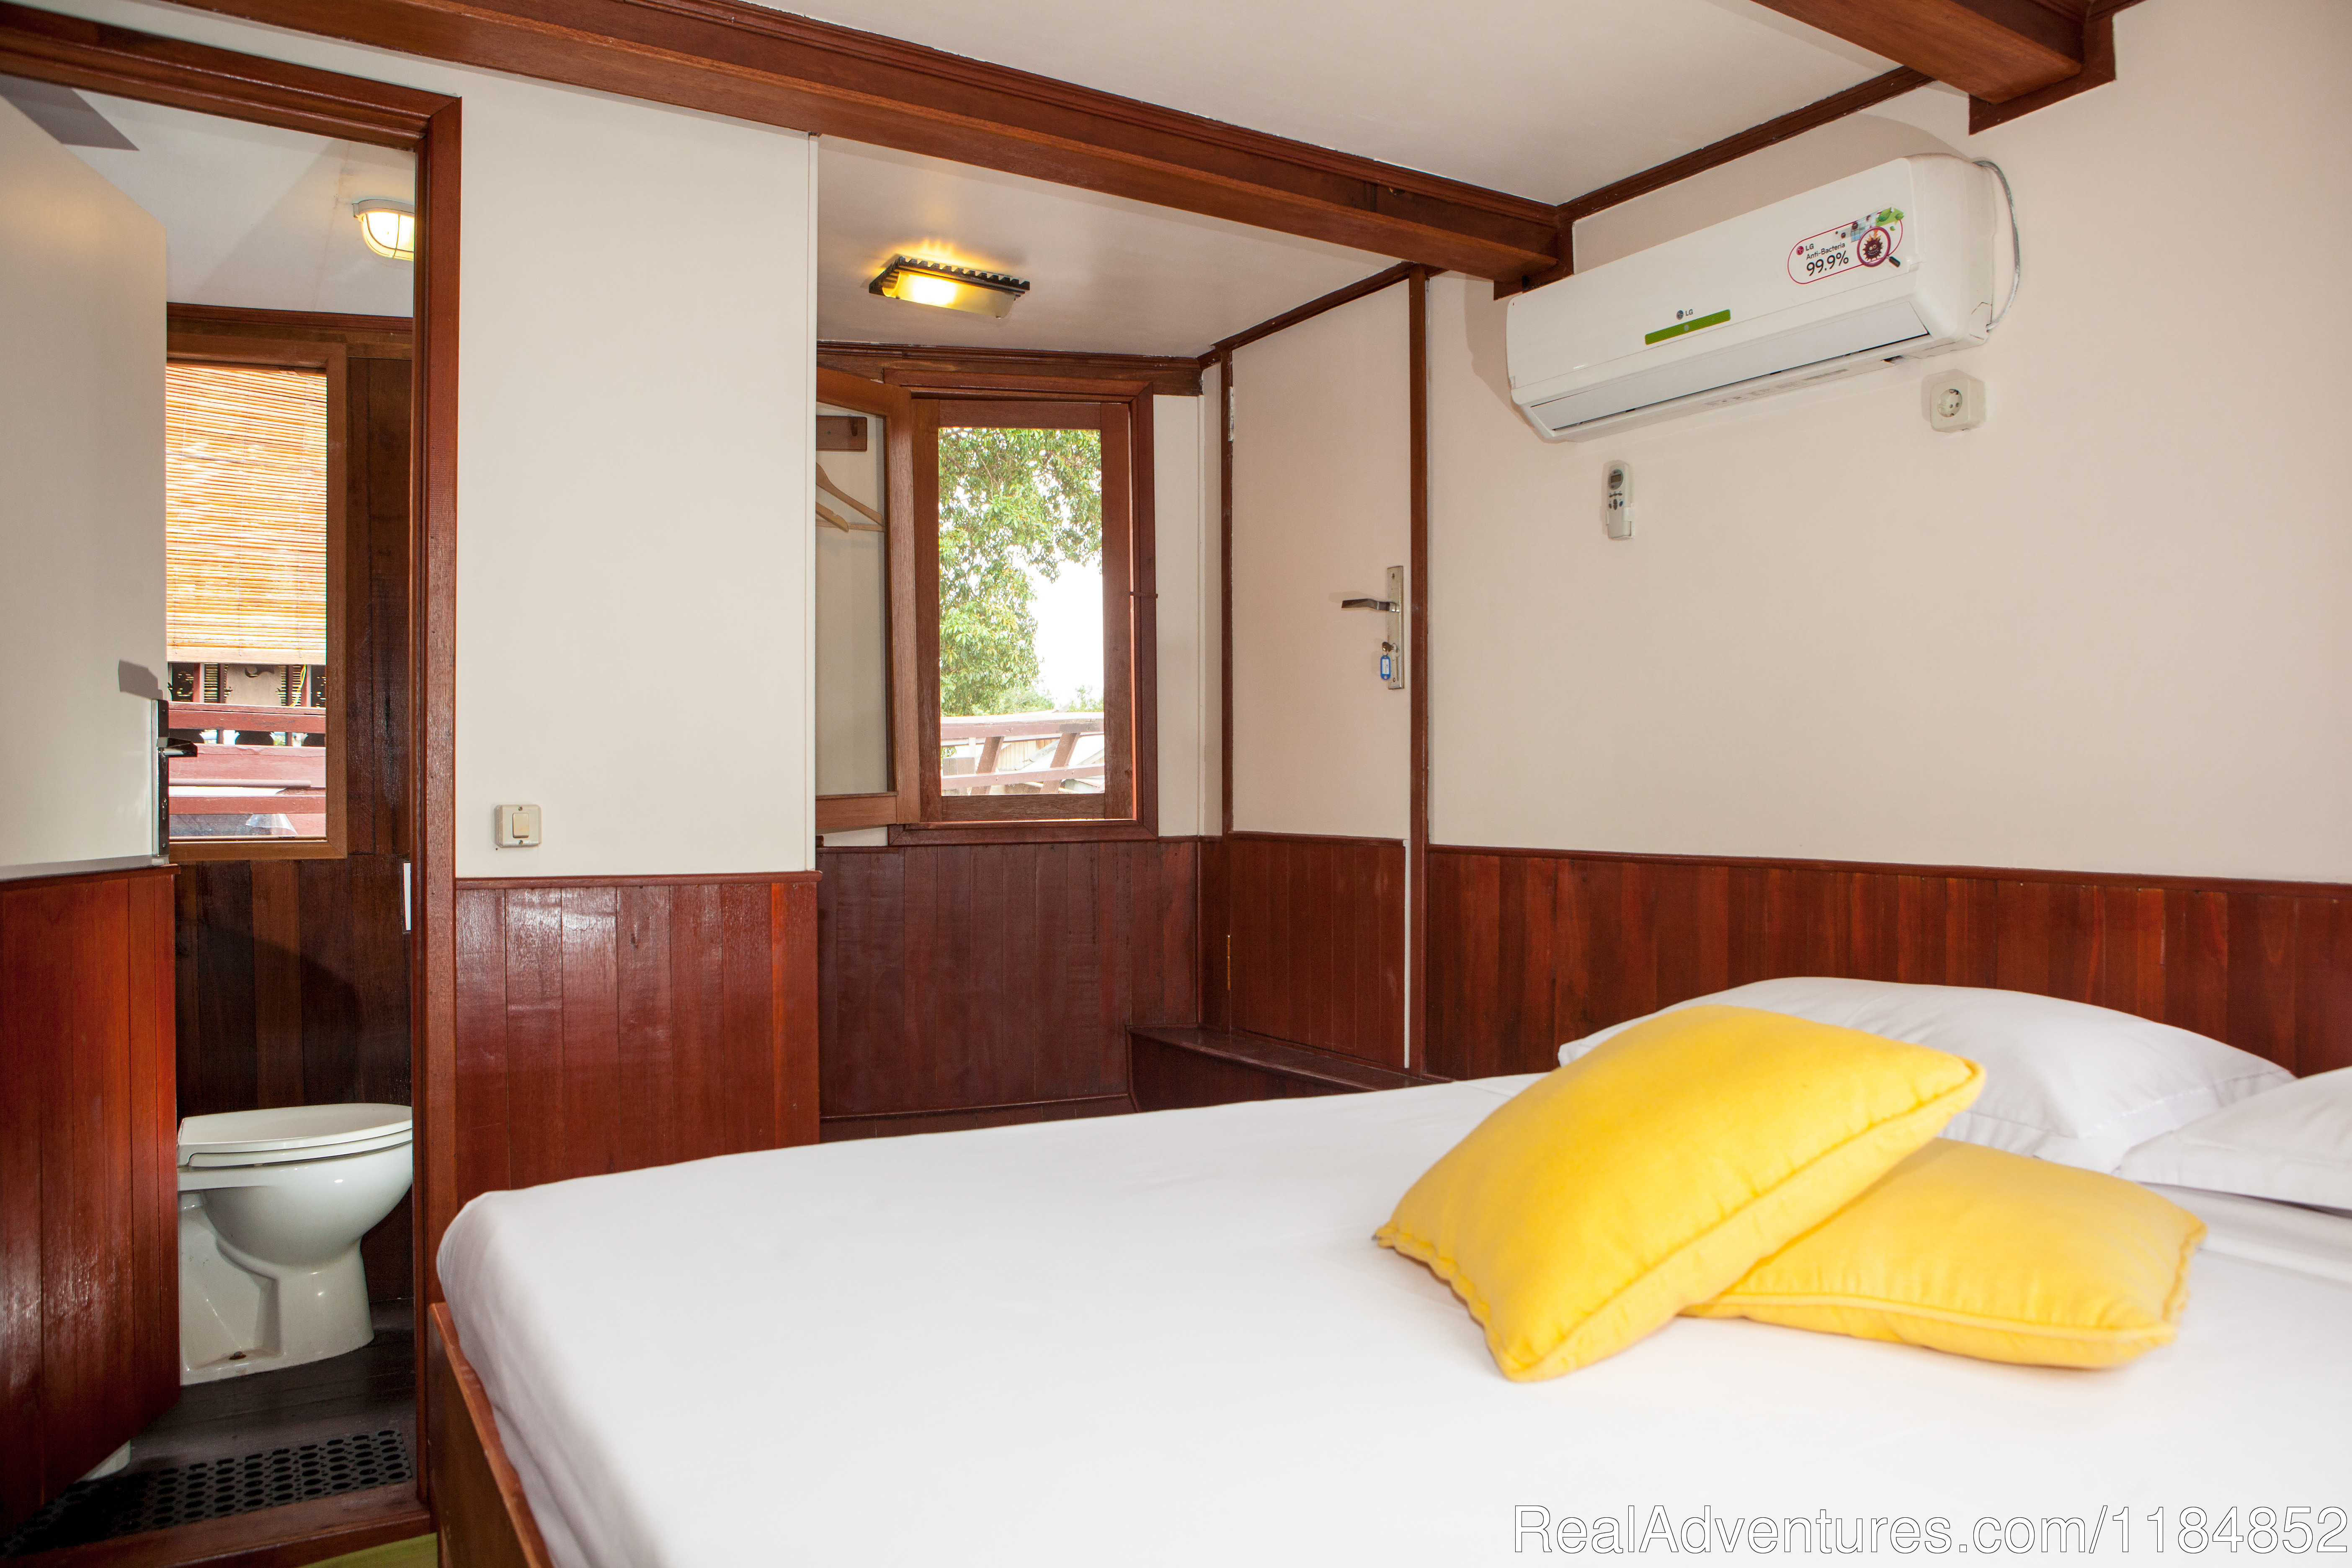 Our Superior Large Cabin on board the Rahai'i Pangun 2